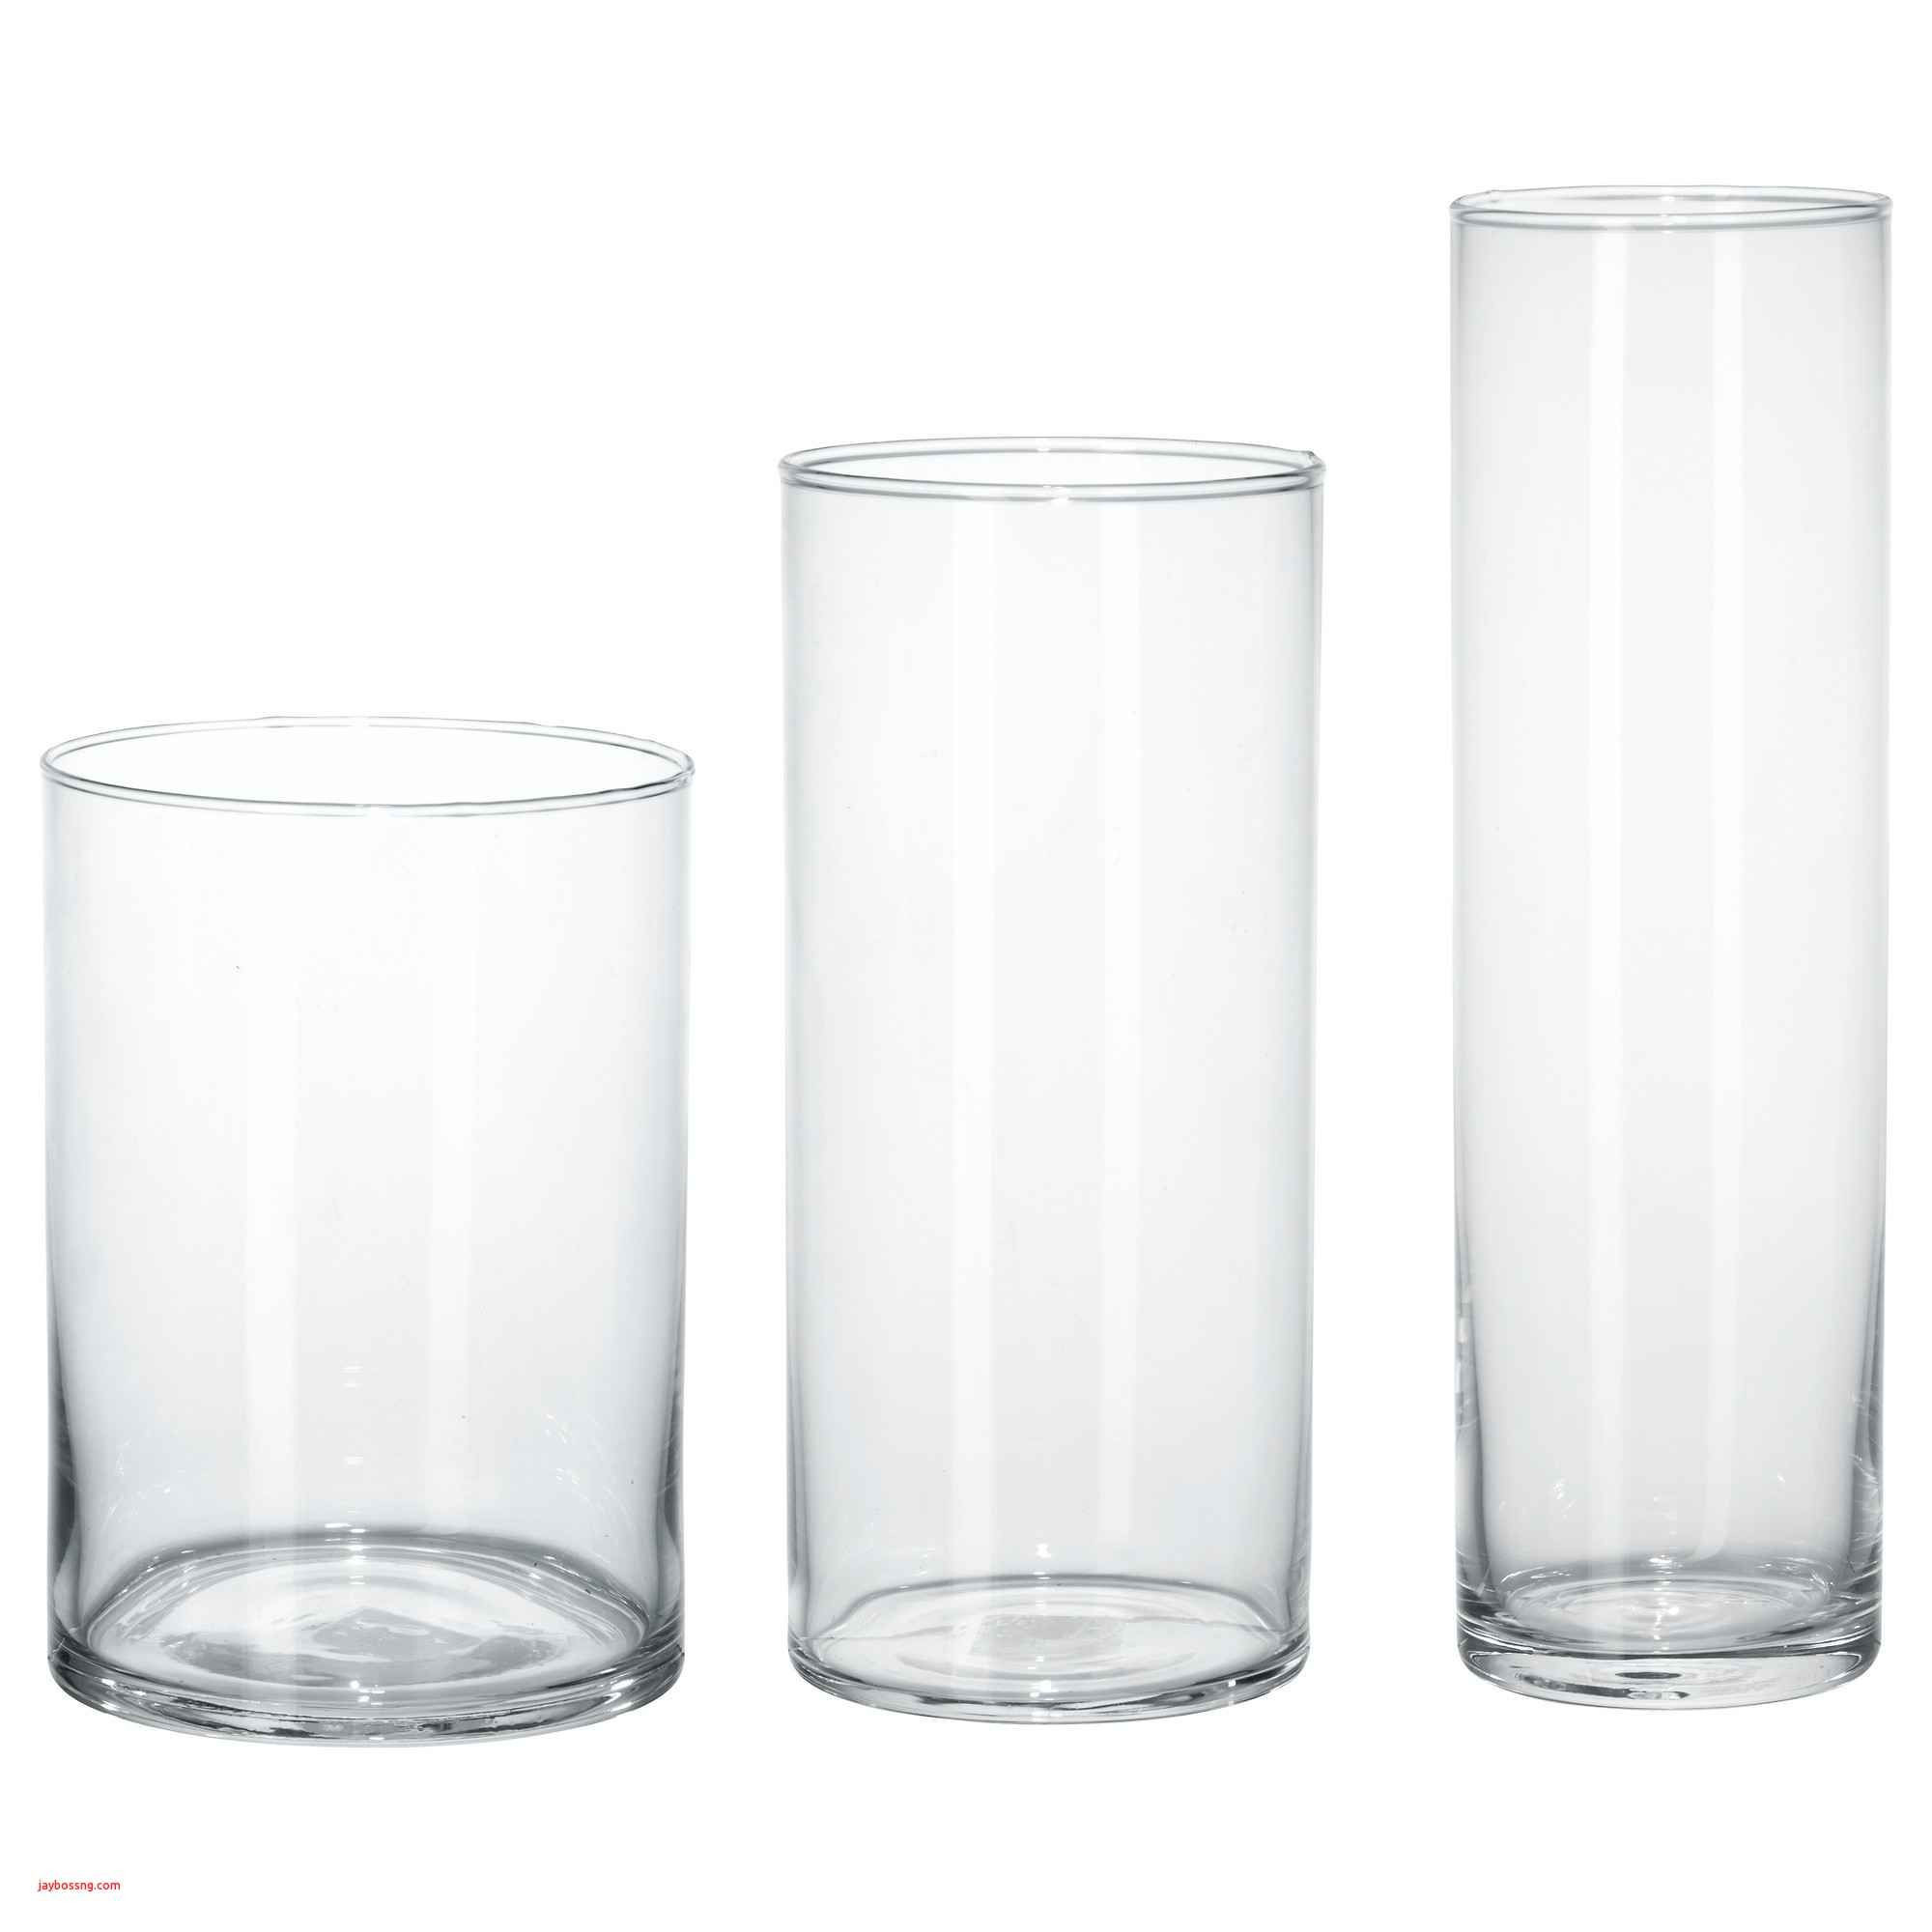 square glass wall vase of brown glass vase fresh ikea white table created pe s5h vases ikea inside brown glass vase fresh ikea white table created pe s5h vases ikea vase i 0d bladet